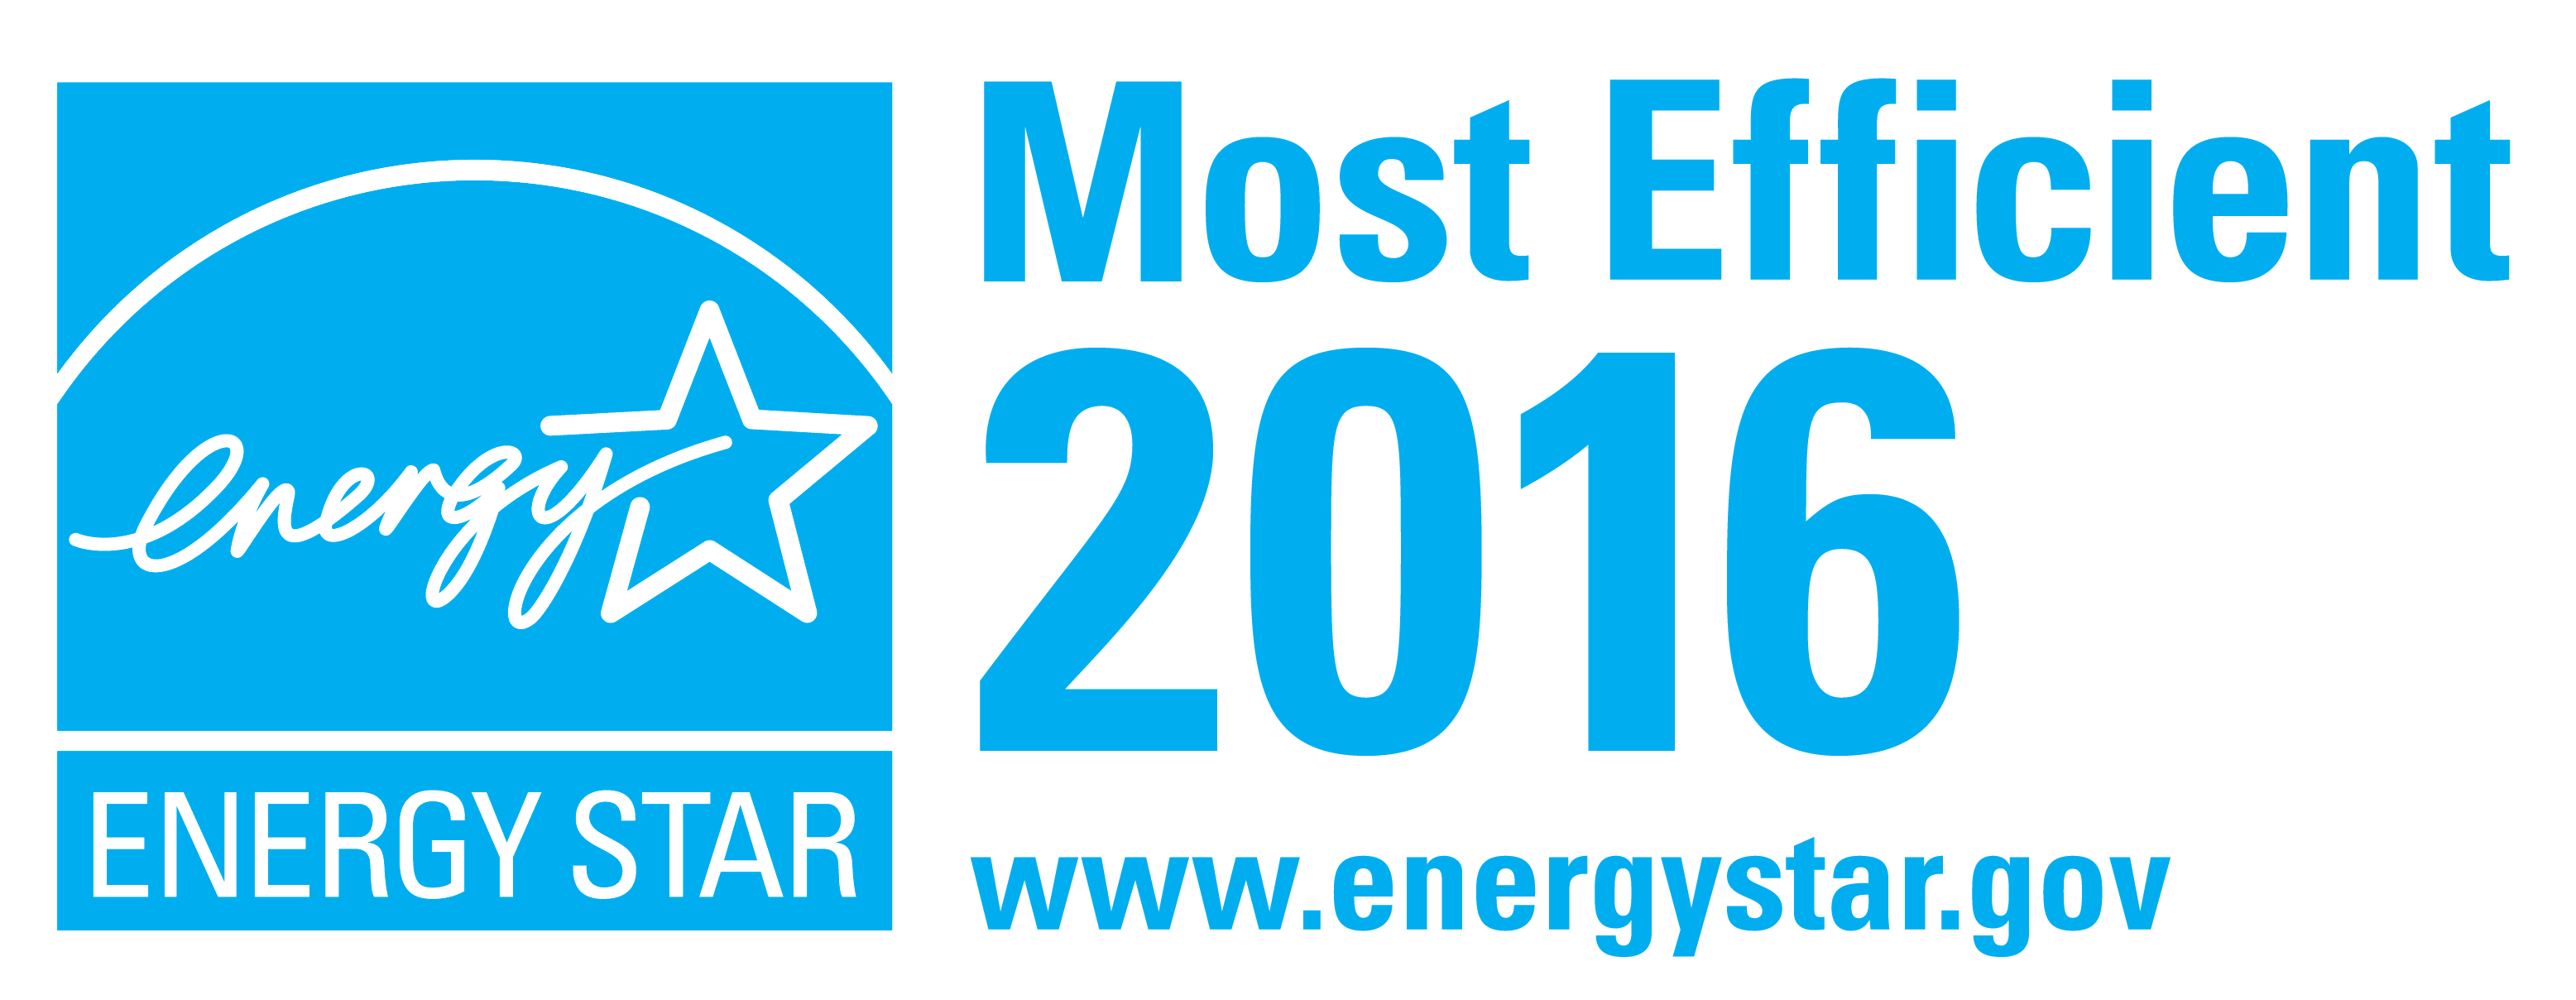 Energy_Star_Most_efficient_2016.png